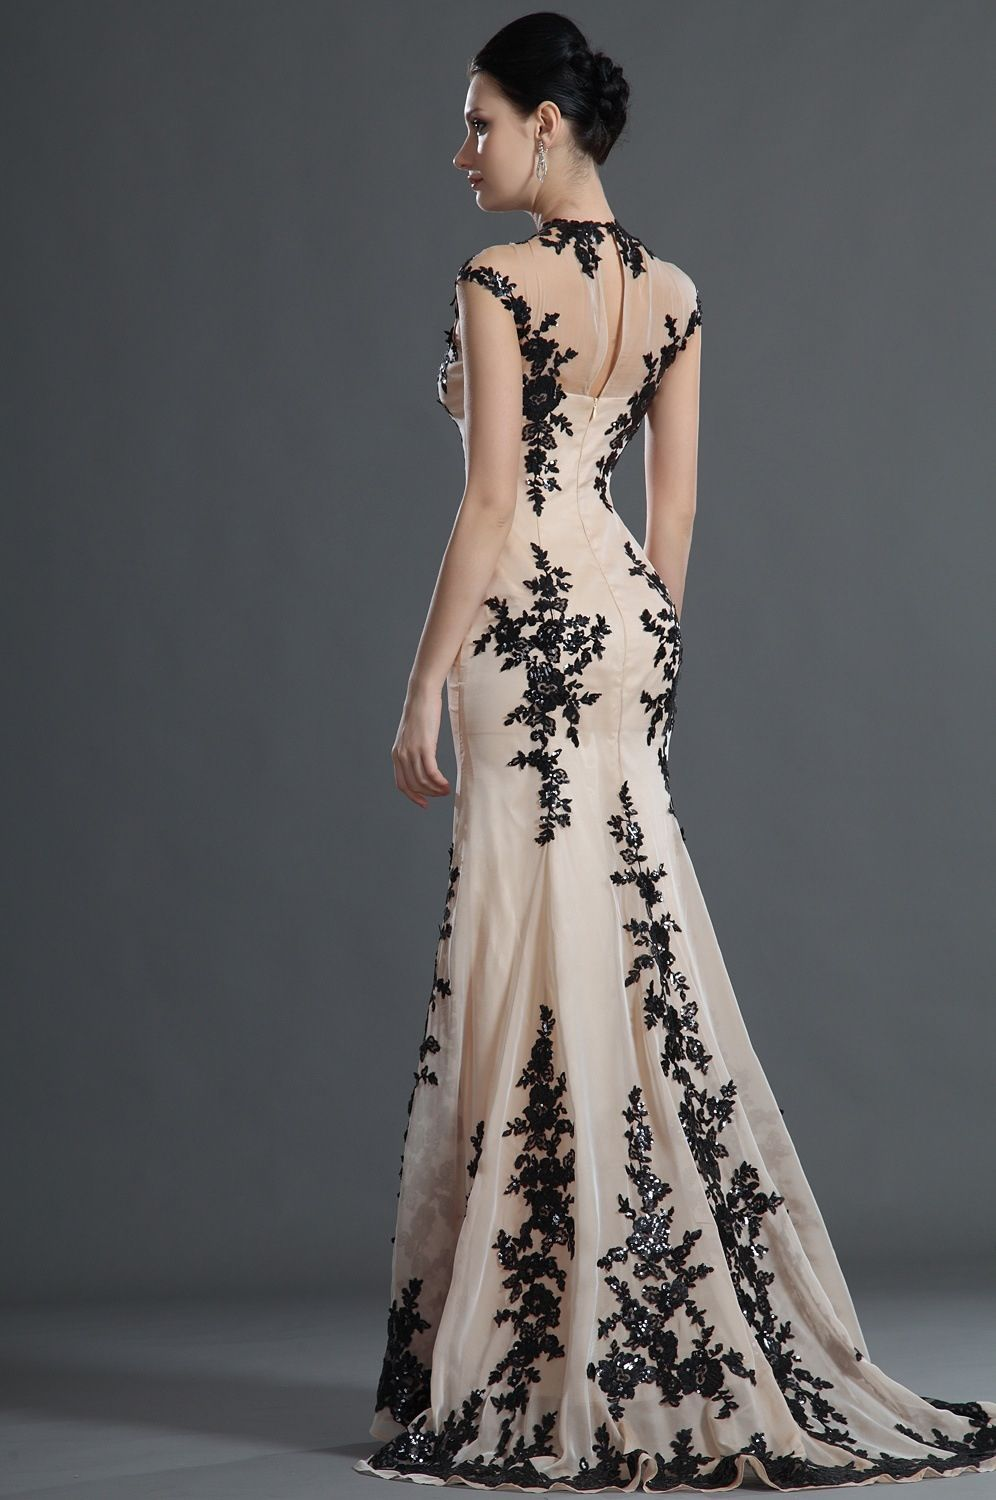 Cream And Black Gown I Want This Gown Soire Pinterest